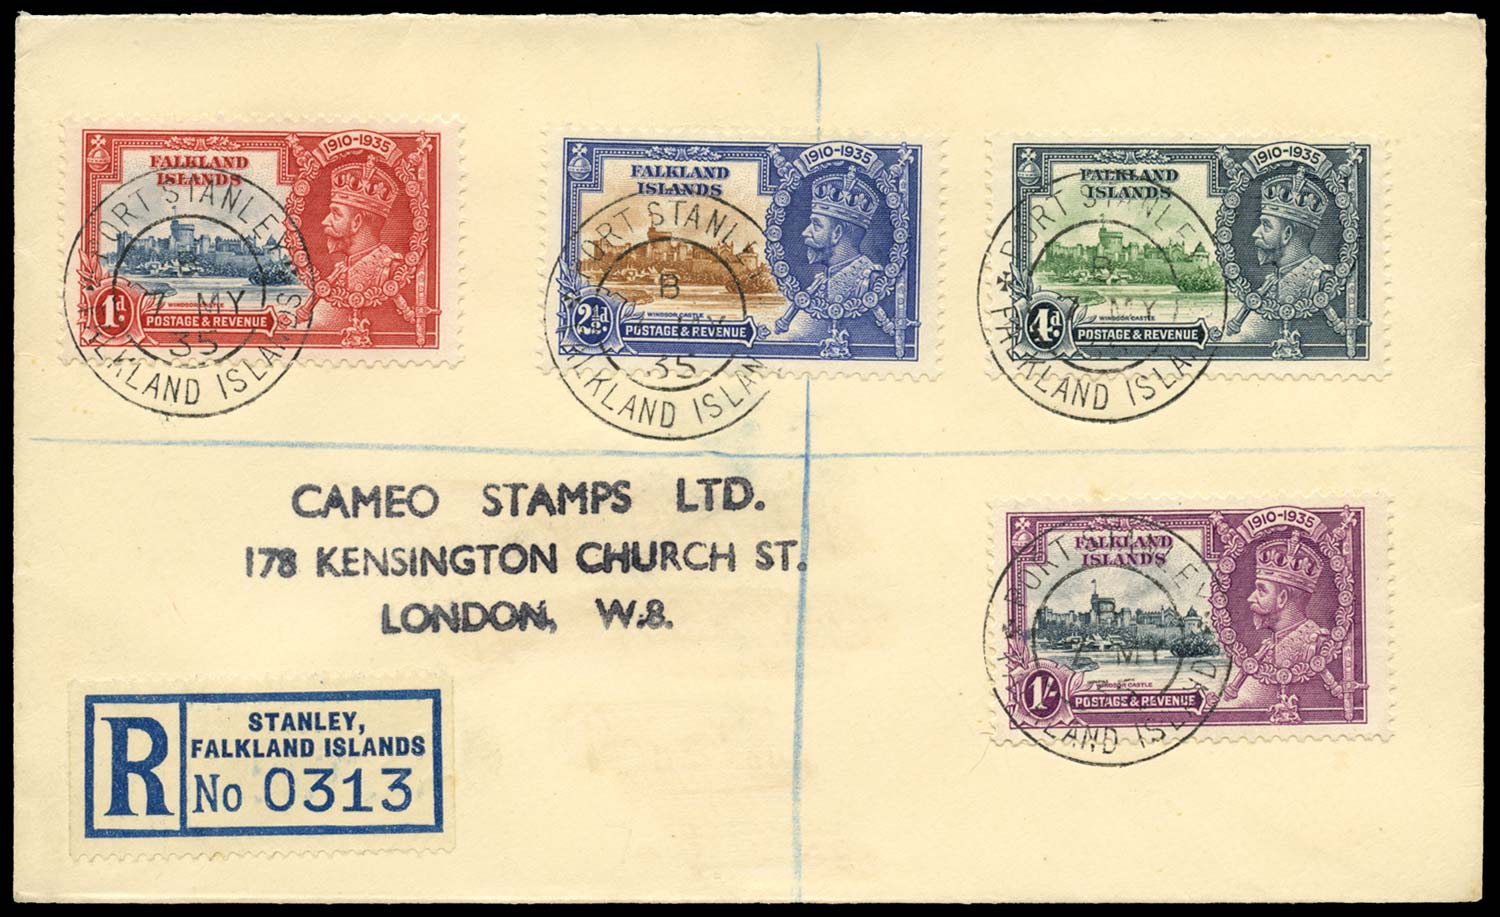 FALKLAND ISLANDS 1935  SG139, 140b, 141, 142d Cover 2½d and 1s variety on FDC